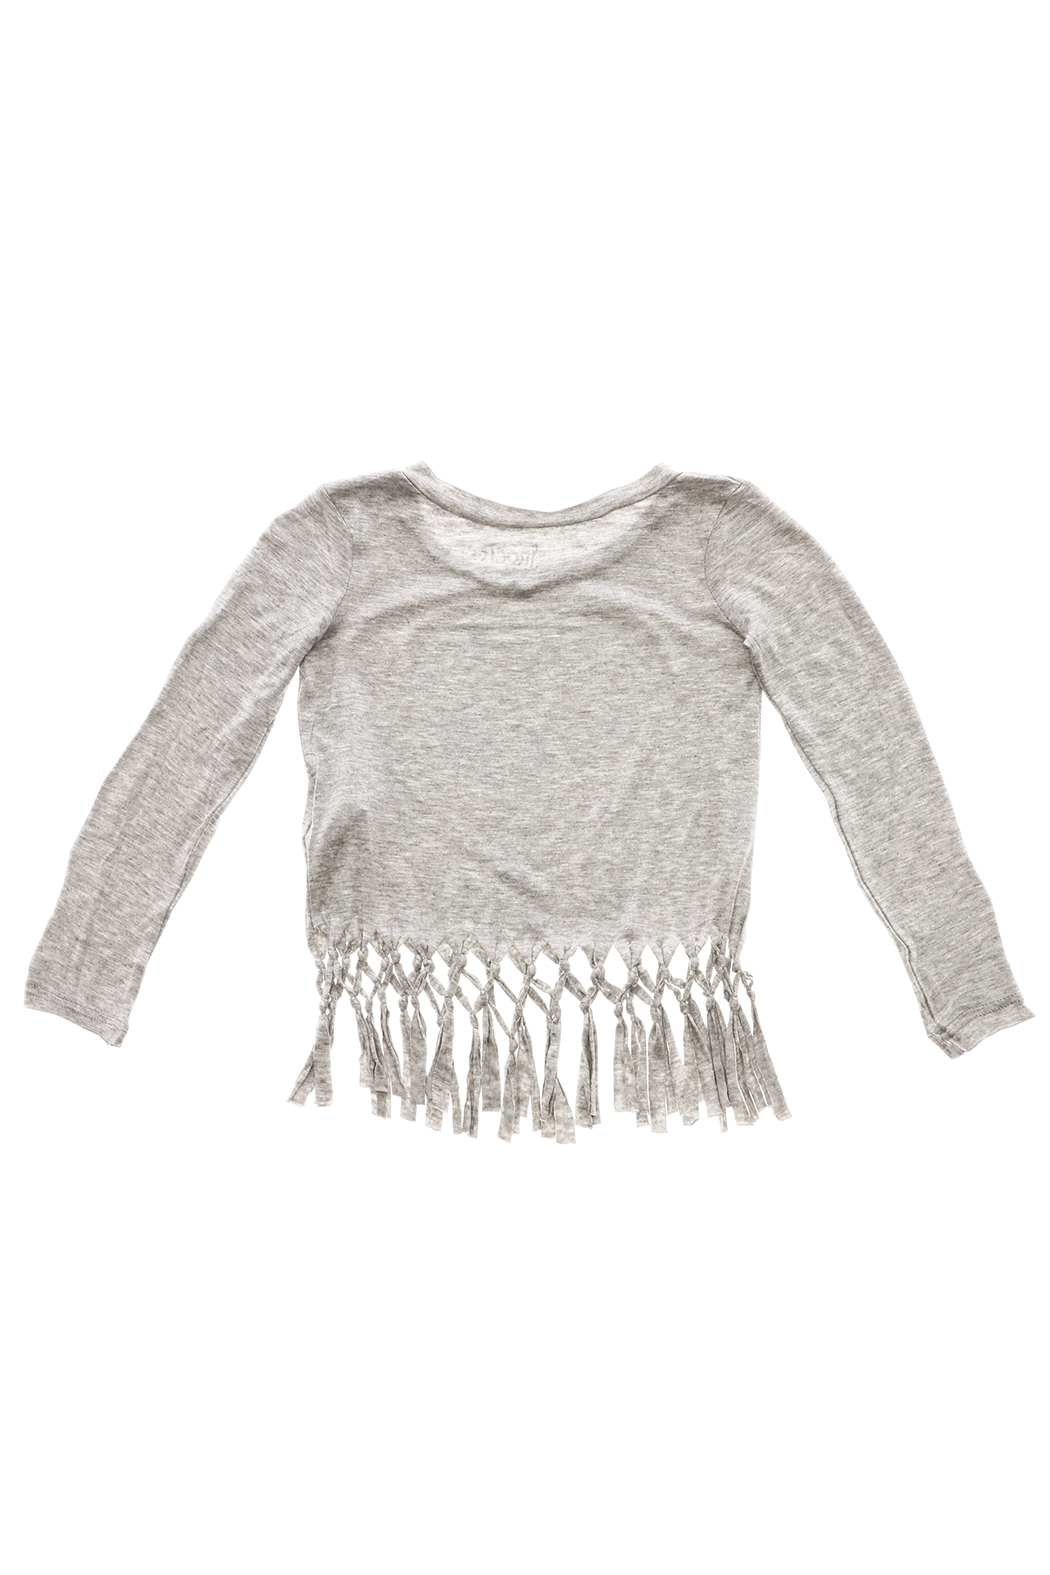 Rock Candy Jeweled Heart Fringe Top - Back Cropped Image